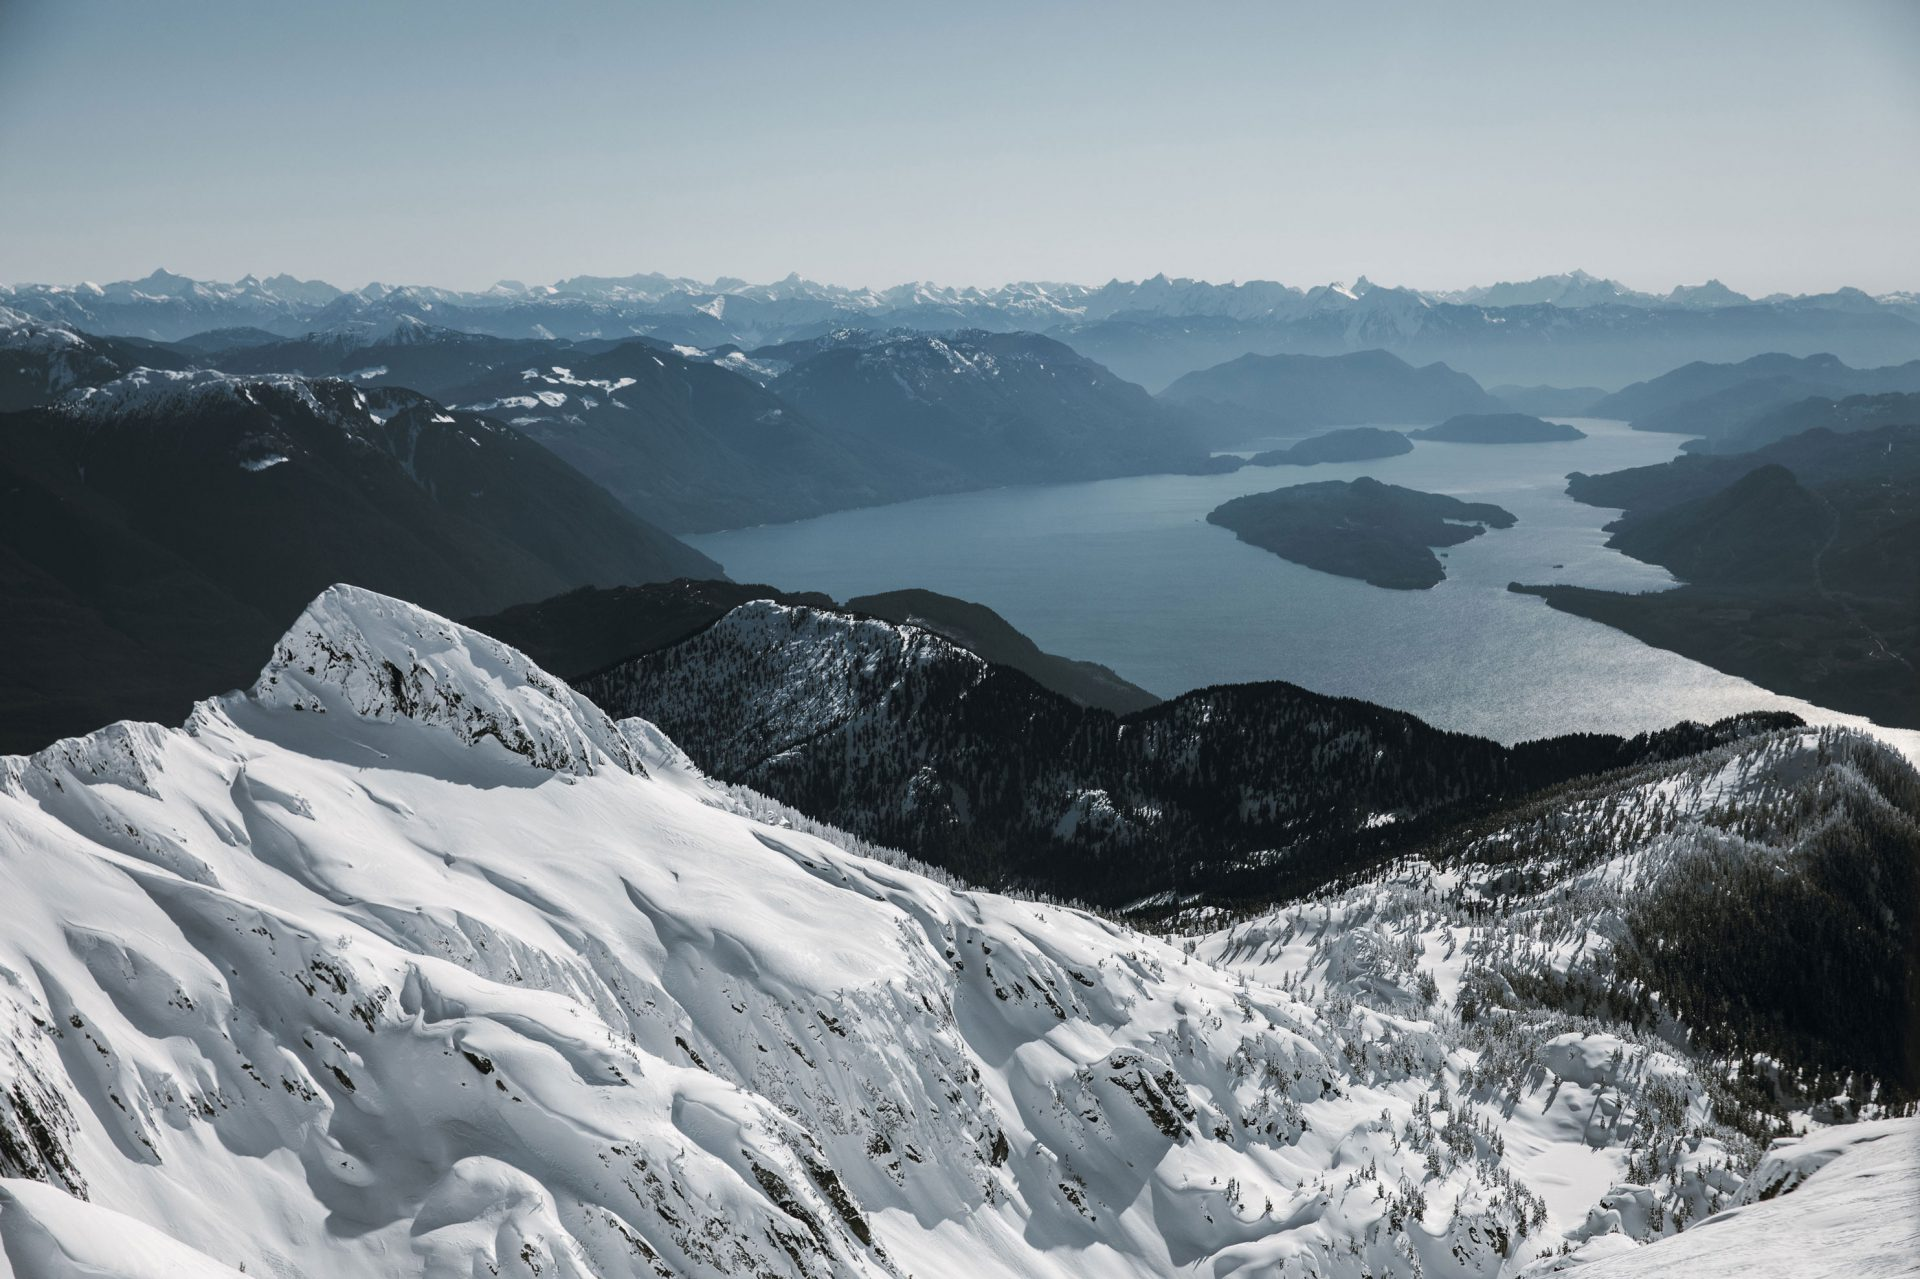 View of Harrison Lake from Lillooet Range in BC